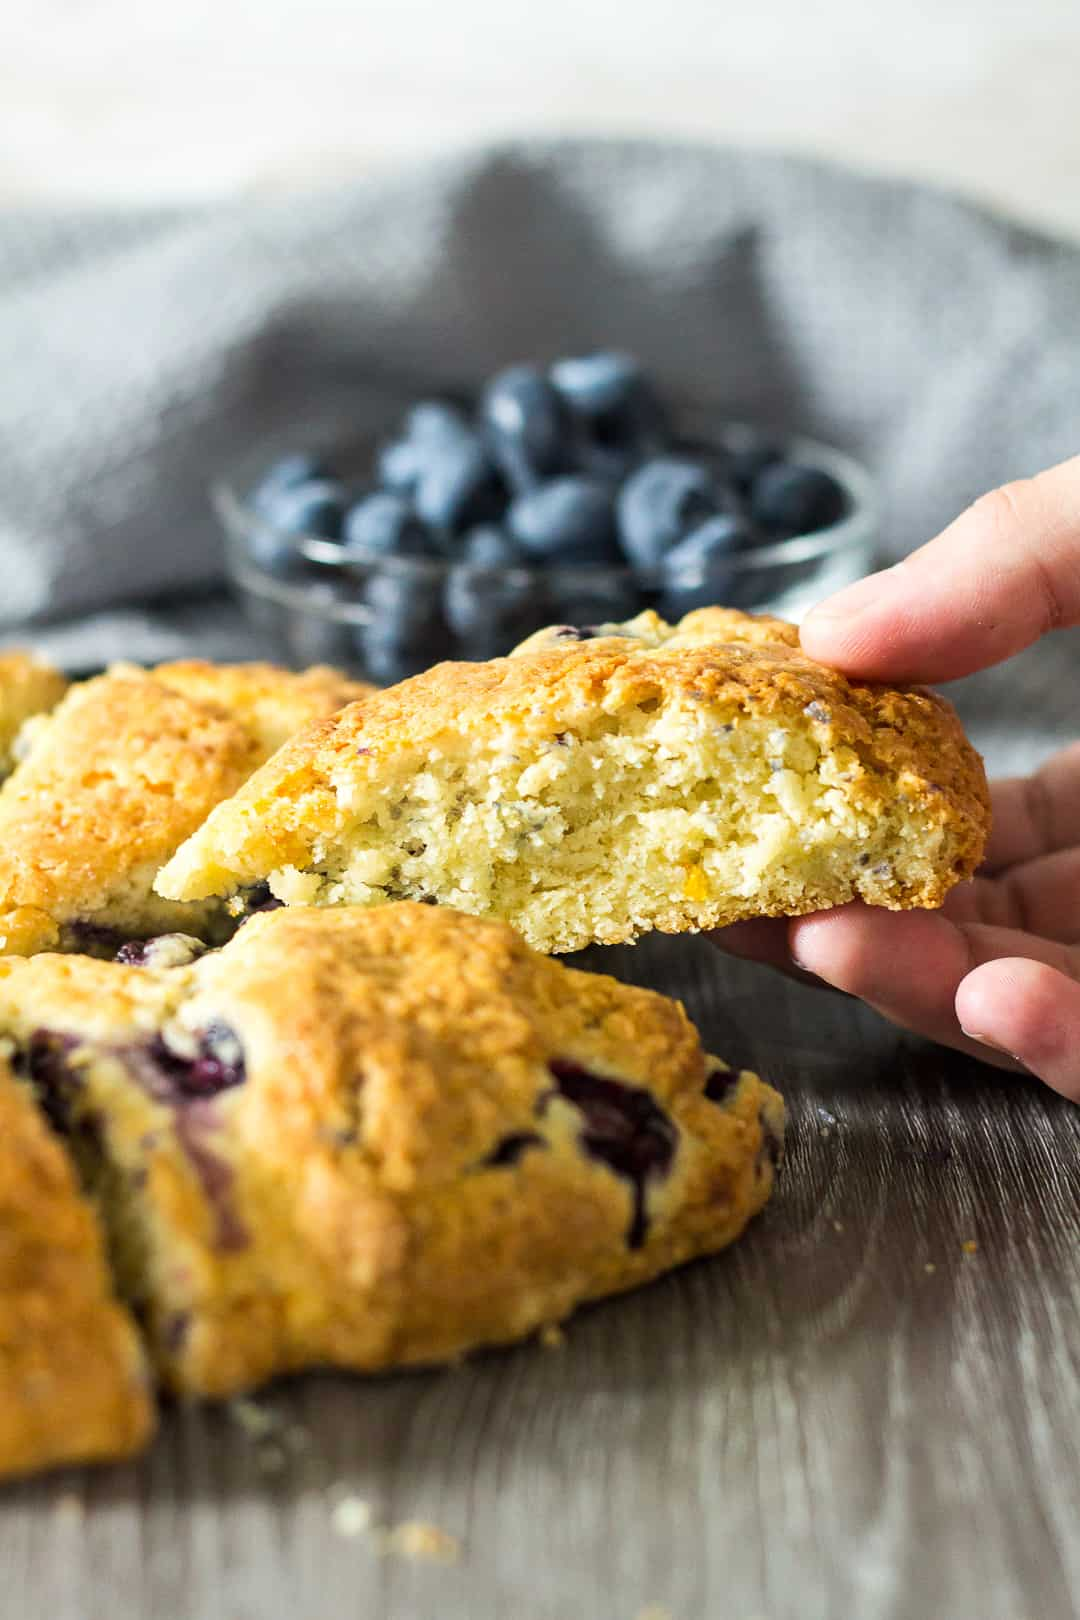 A Blueberry Orange Scone being picked up by hand from the batch of scones.